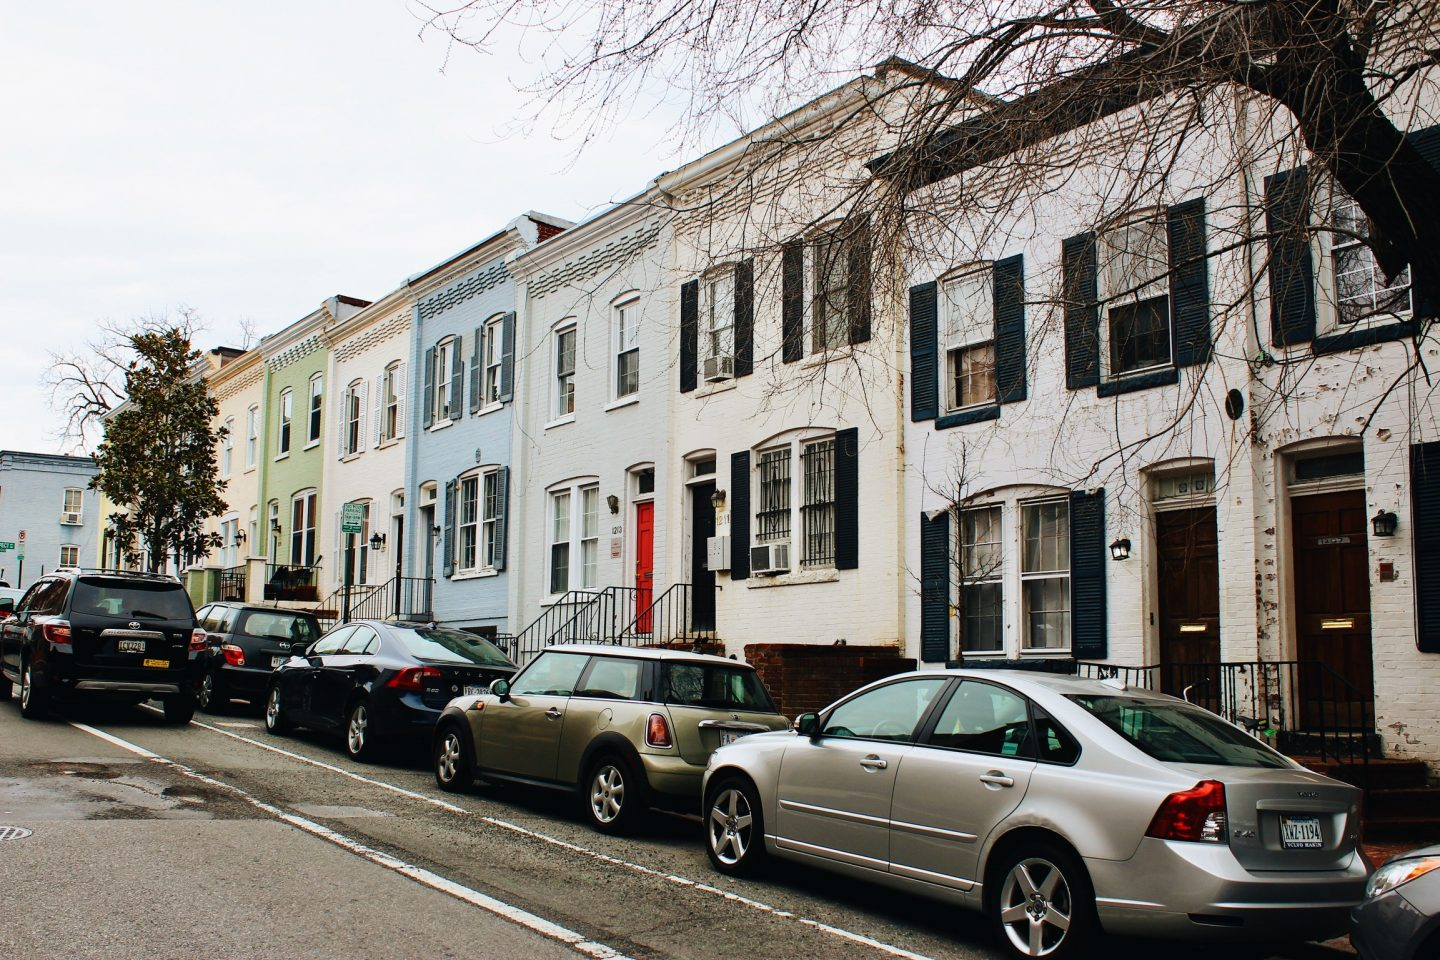 Colorful row homes in Alexandria, Virginia!